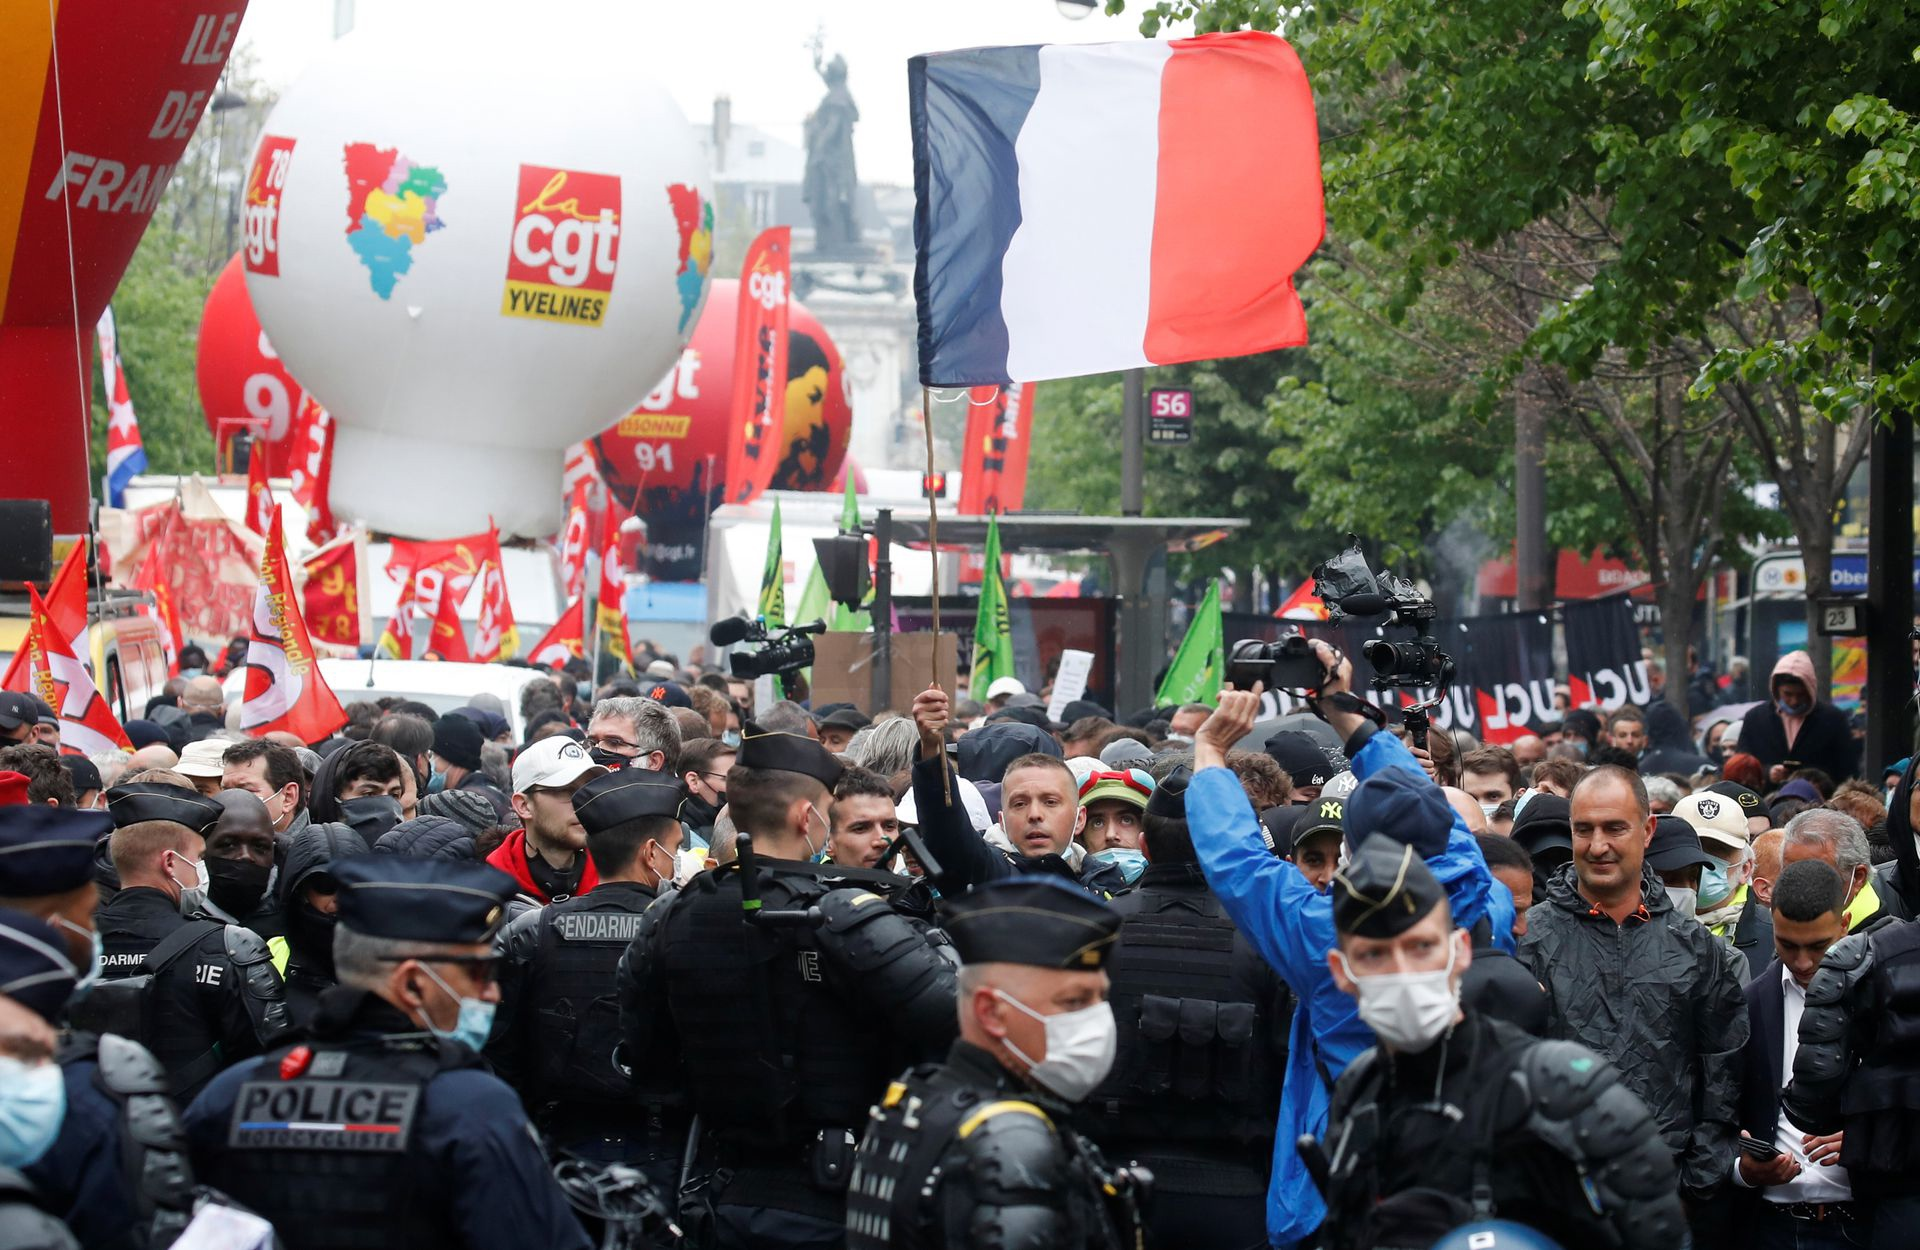 Law enforcers in Paris begin arrests of participants in May Day demonstrations